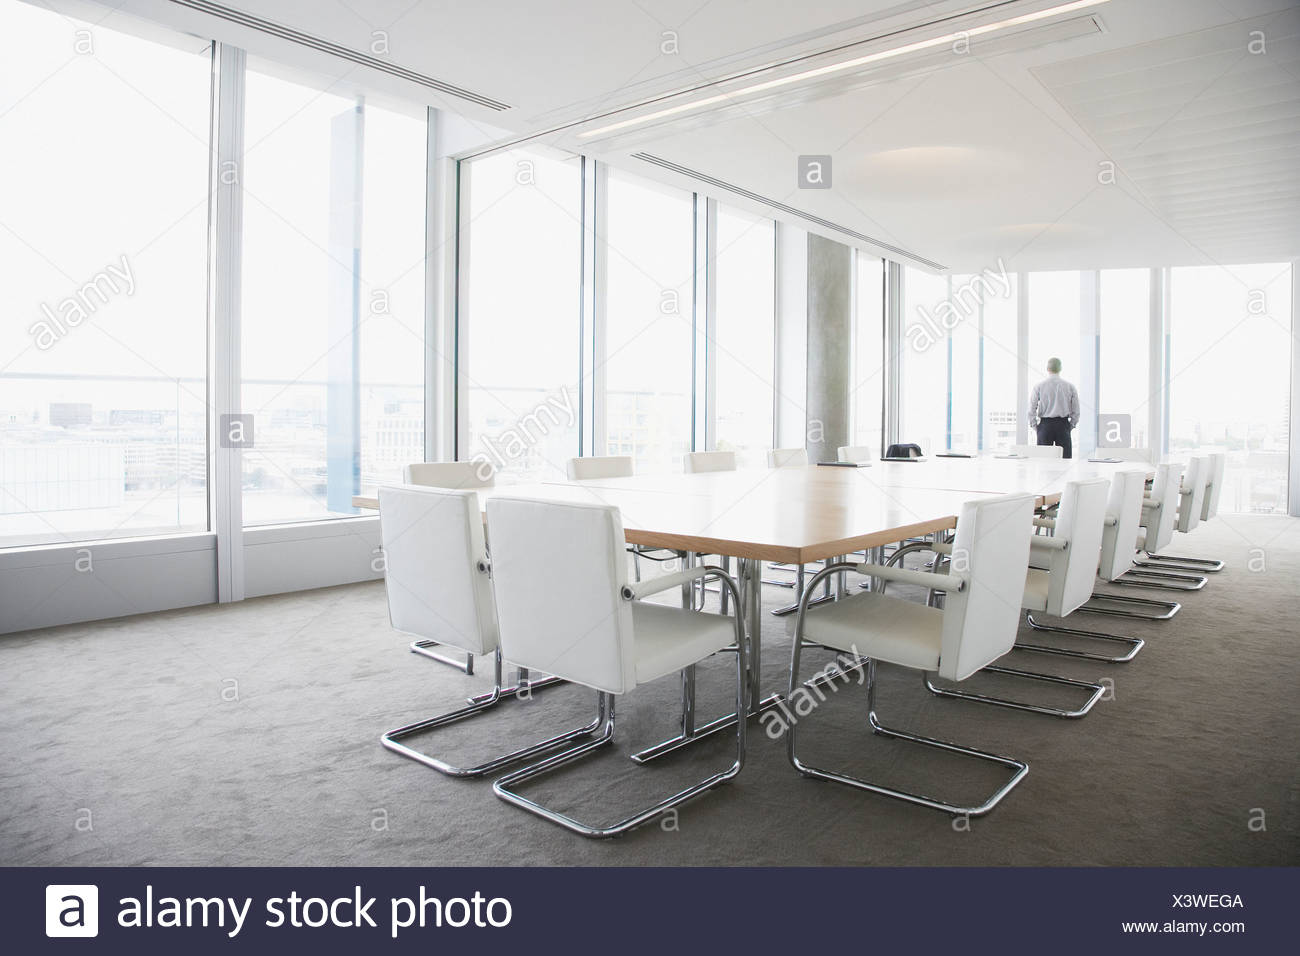 Businessman Standing In Conference Room Stock Photo Alamy - Standing conference room table